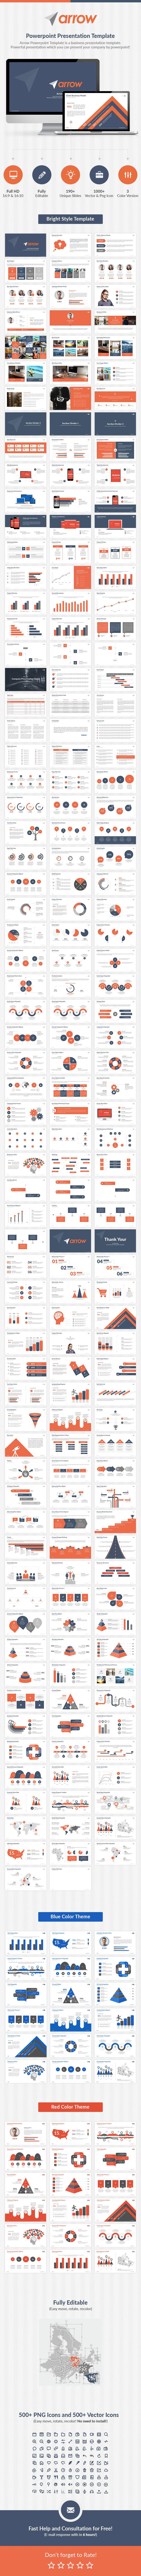 Arrow Powerpoint Presentation Template (PowerPoint Templates)